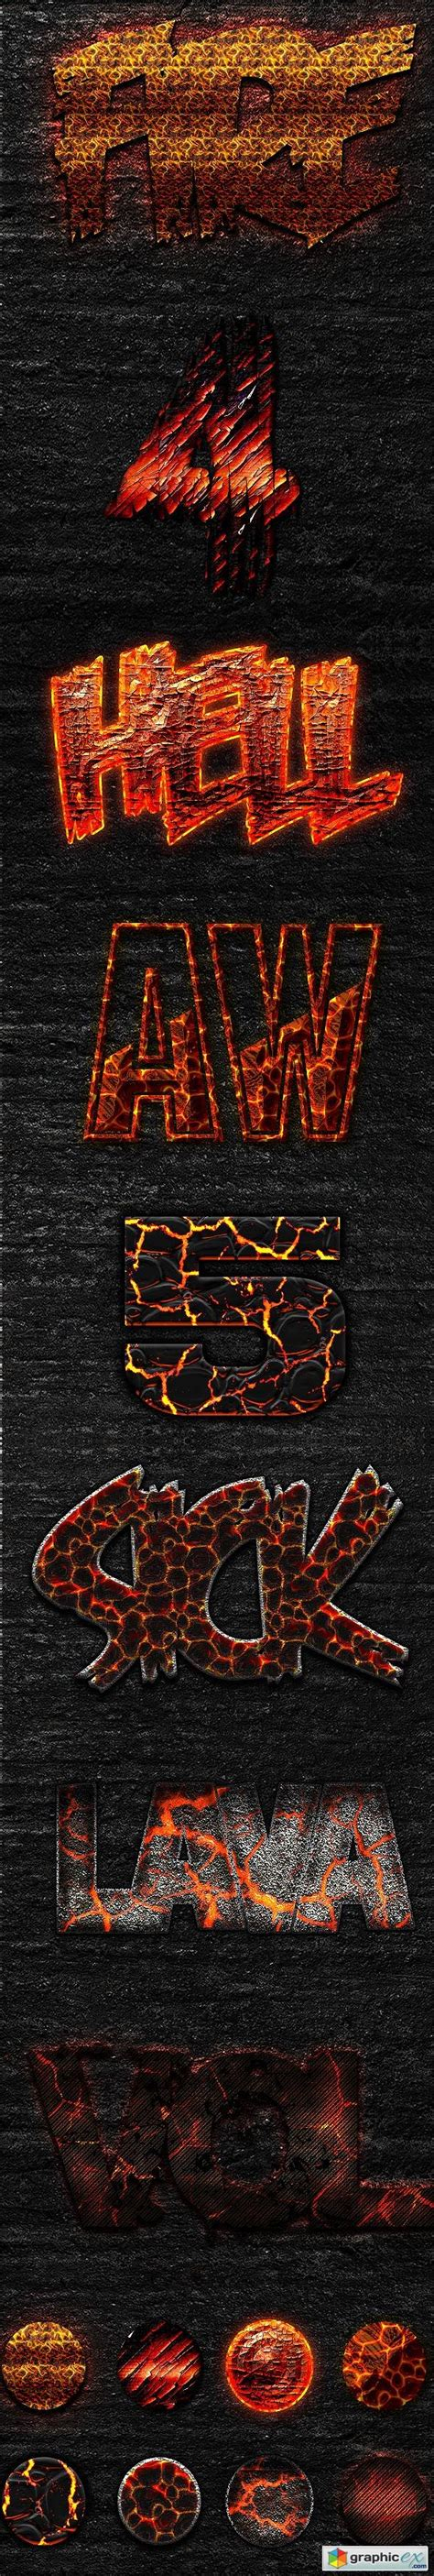 best burning software 2015 best burn lava text styles 2015 187 free vector